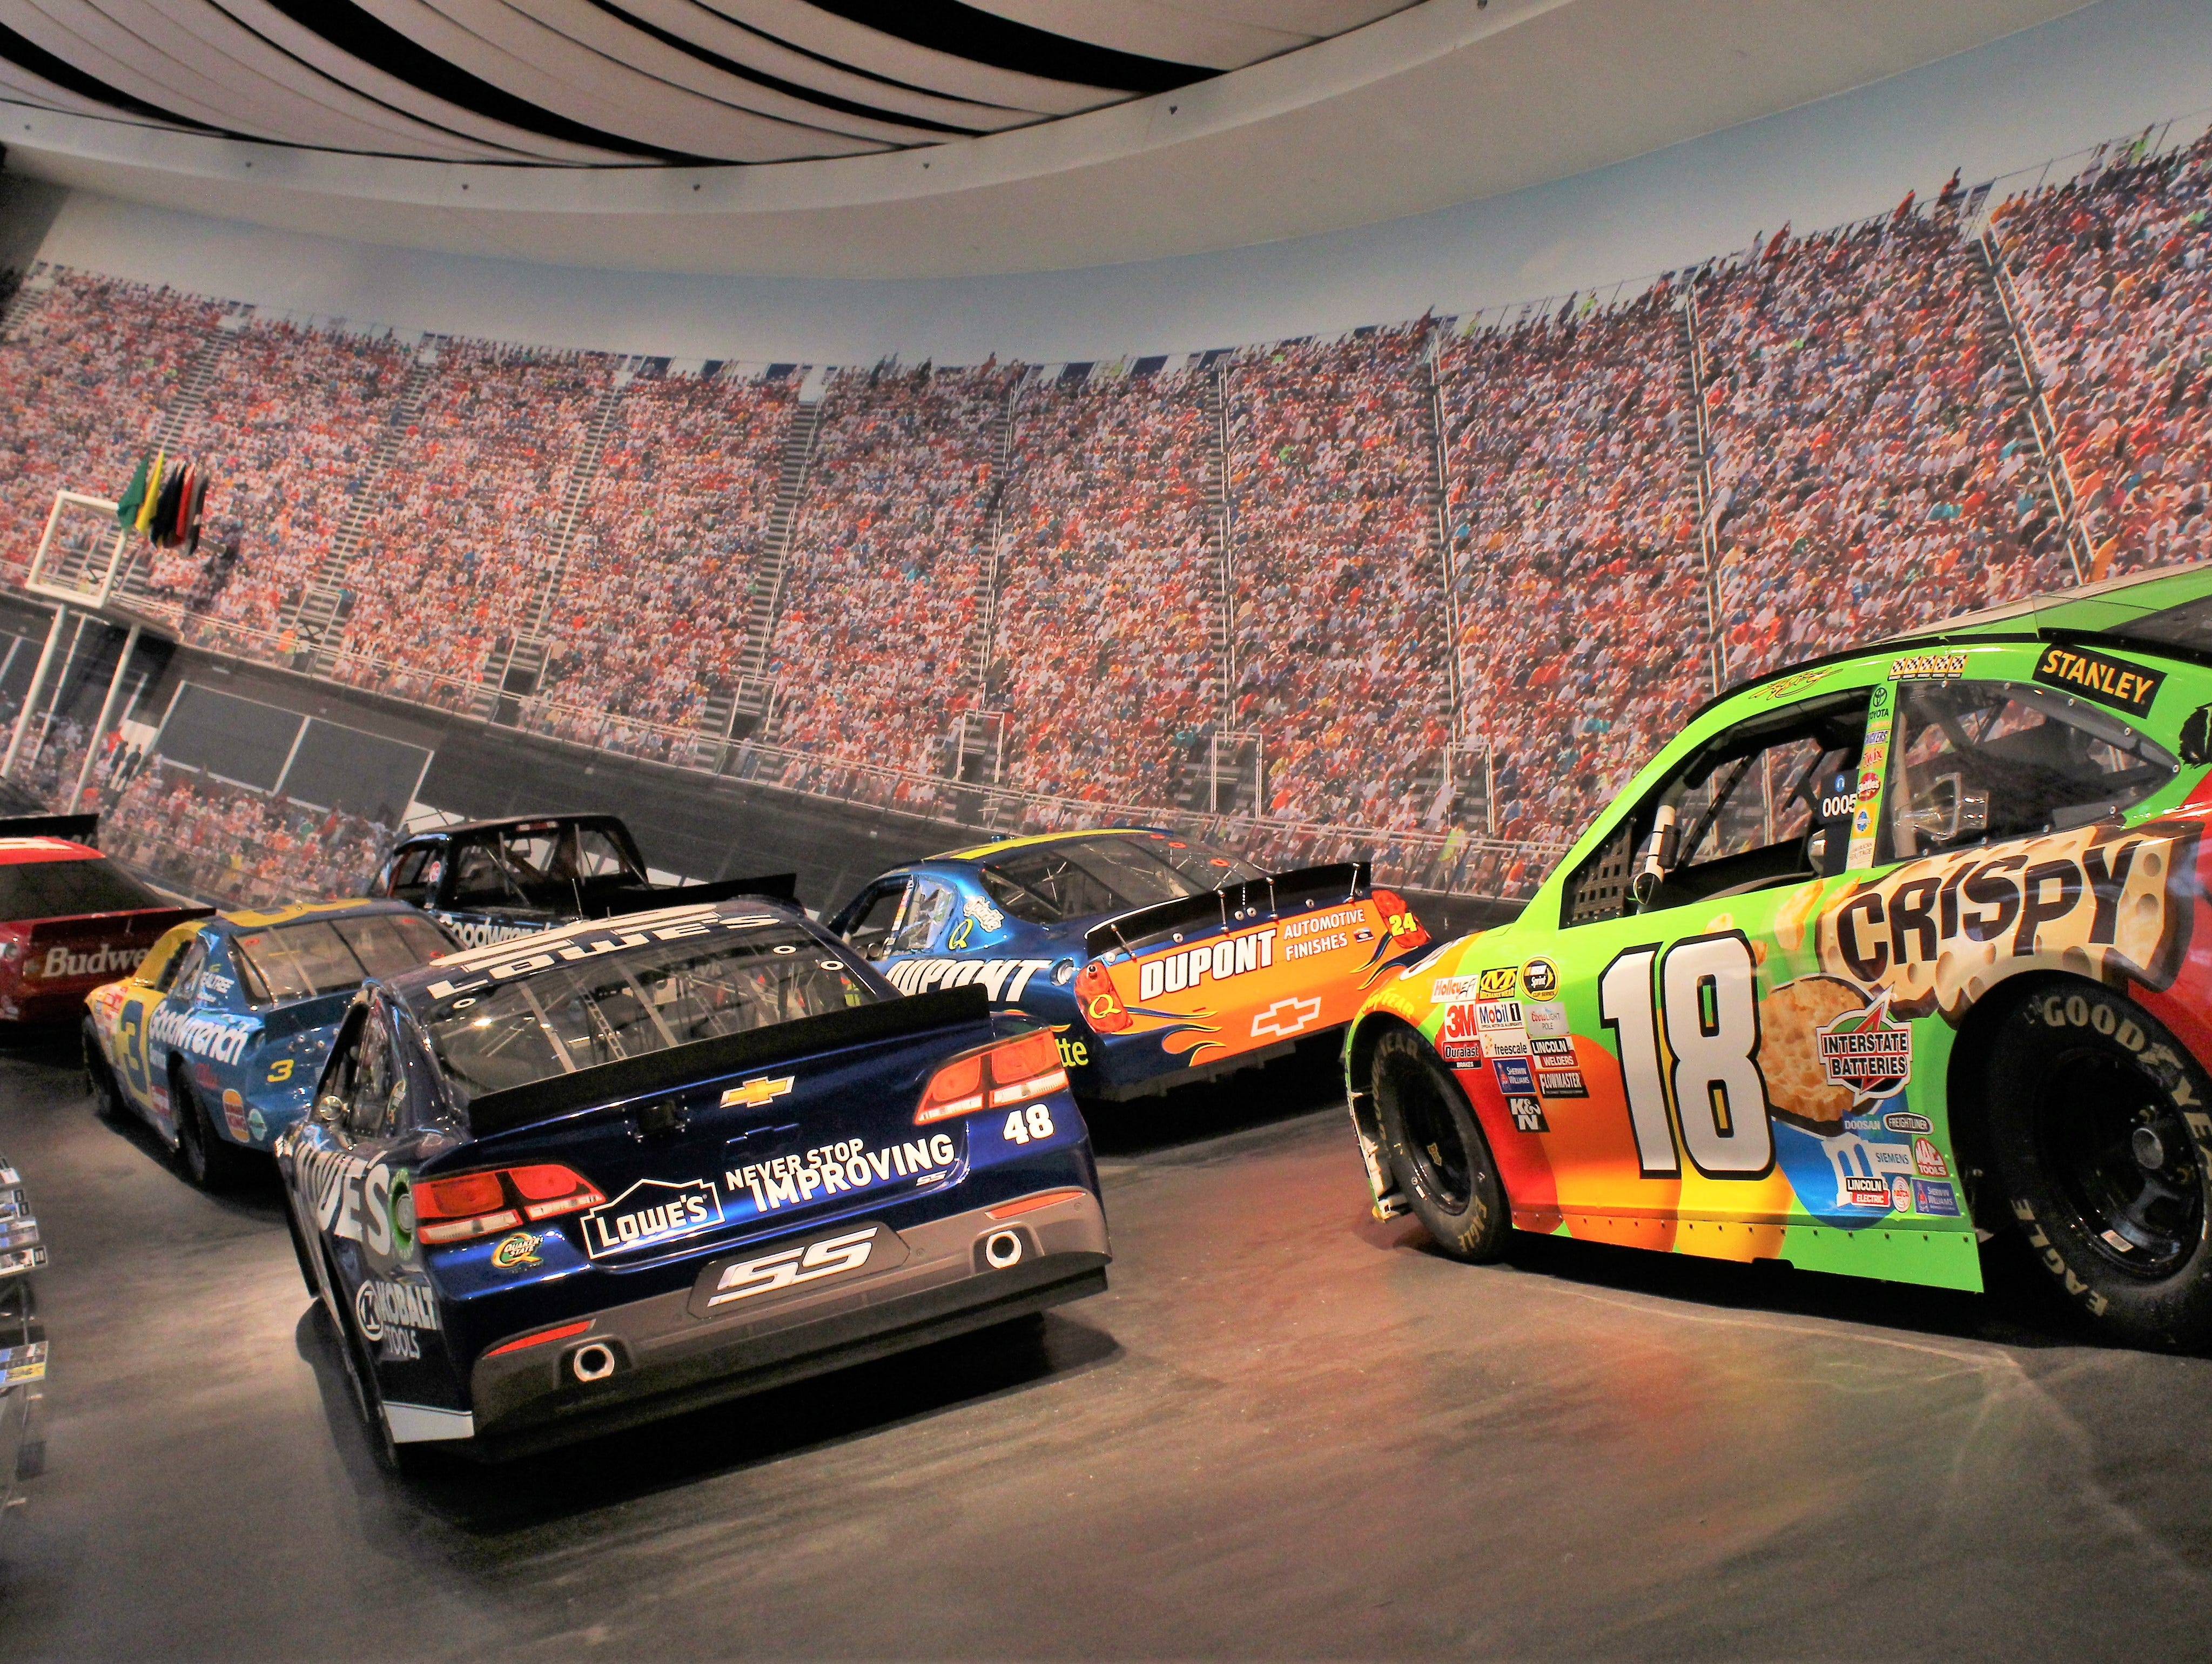 The Glory Road exhibit at the NASCAR Hall of Fame features a display of some of the most iconic cars in the sport on a race track setting.